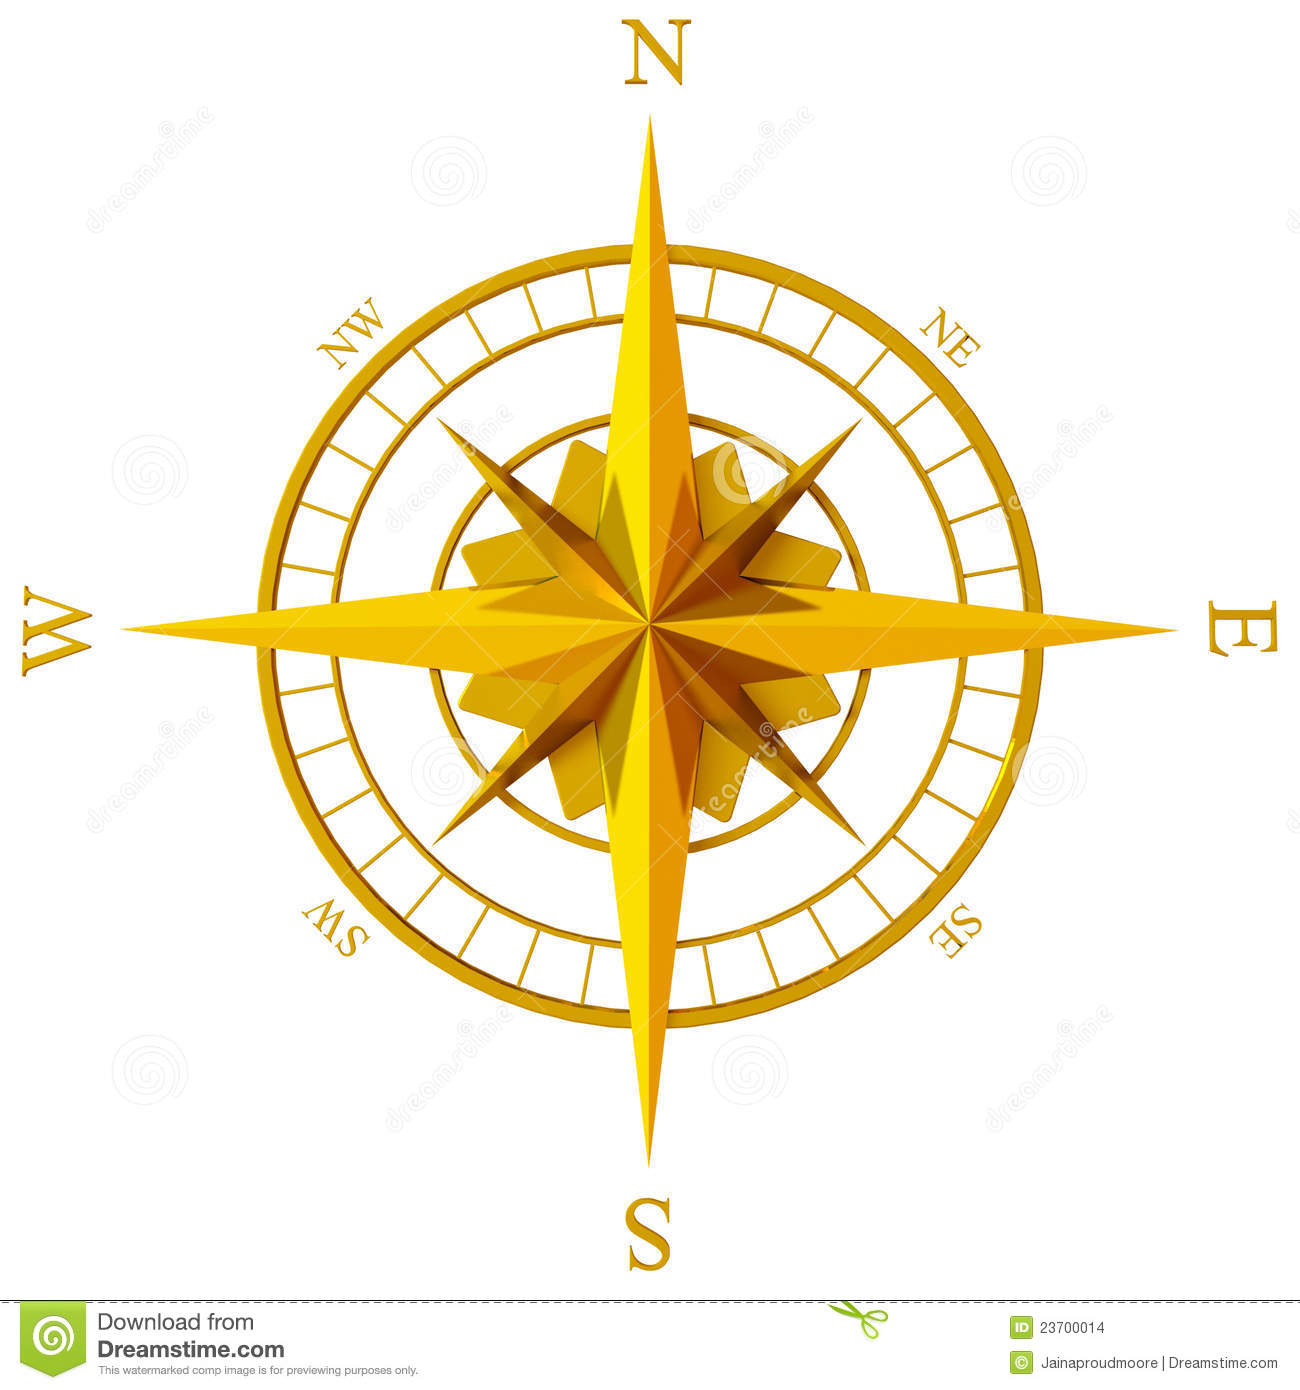 golden compass rose stock images image 23700014 free vector compass rose image free vector compass rose image